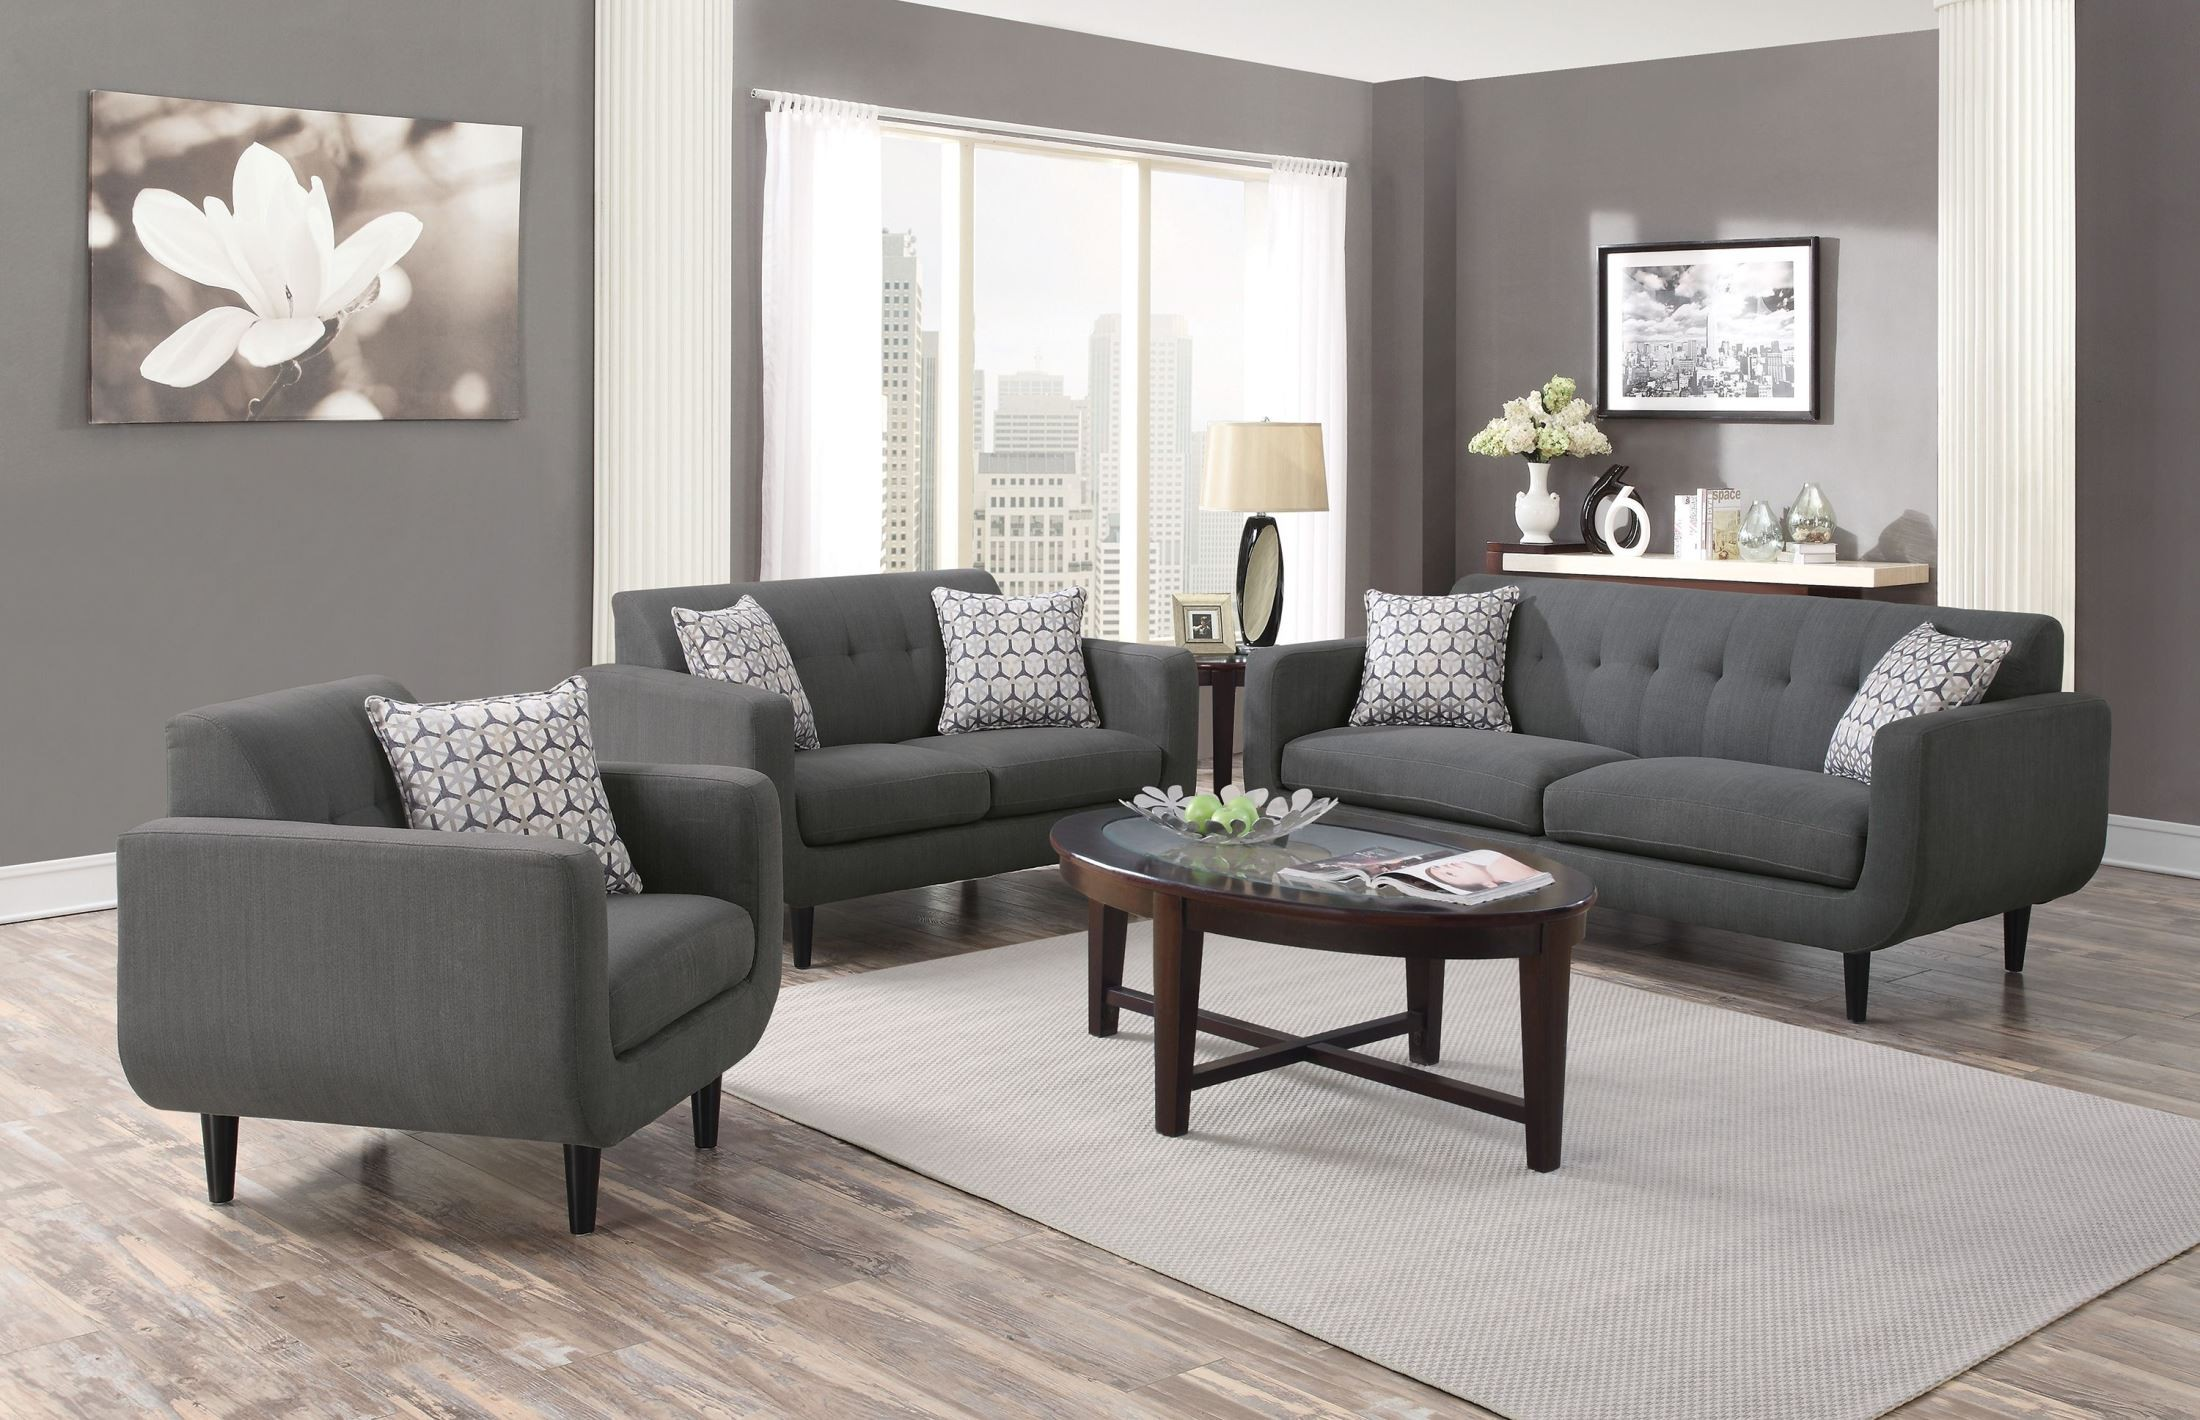 Stansall grey living room set 505201 coaster for Family room furniture sets